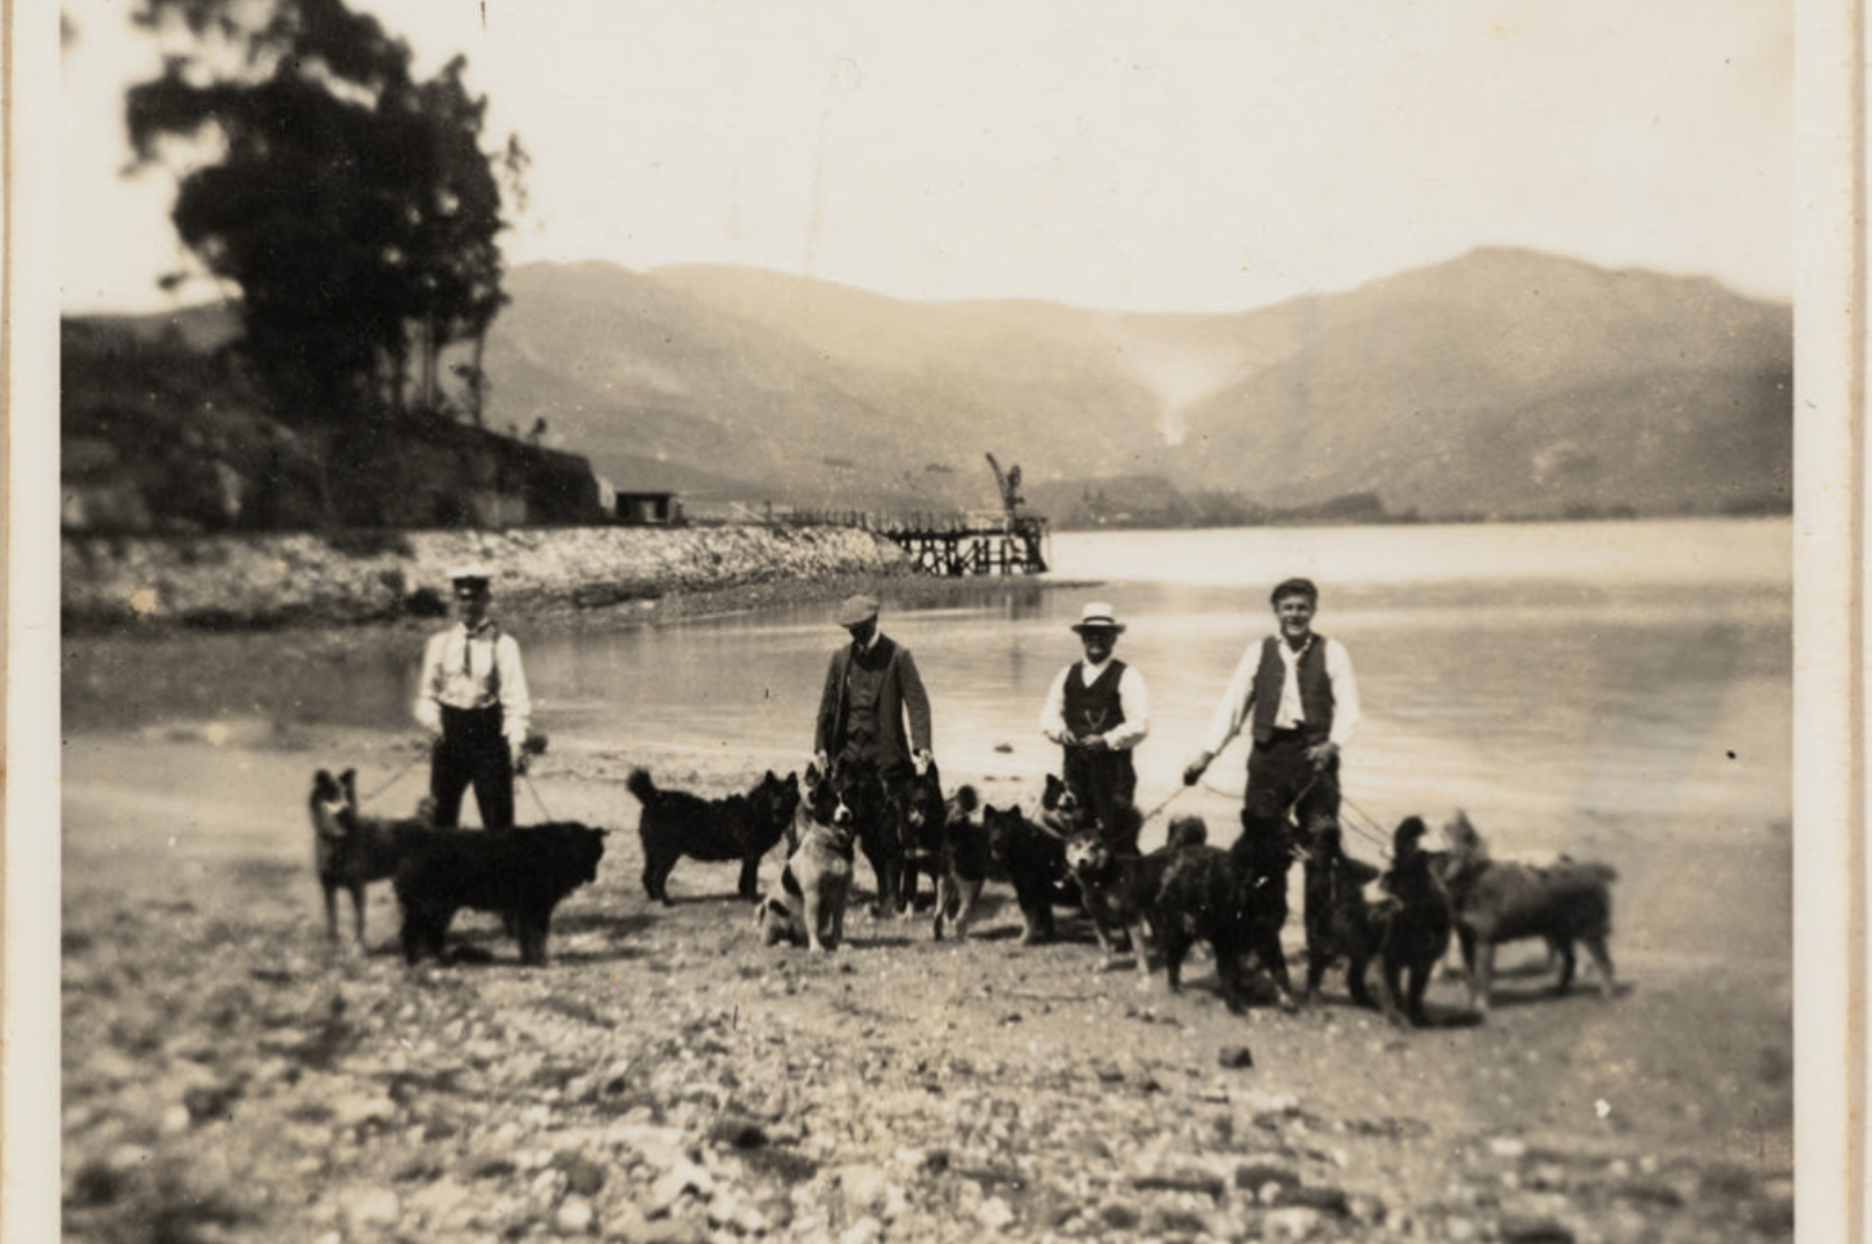 11670 1 Approx. 13 dogs and four men on Quail Island in 1911, training for Antarctic Expedition